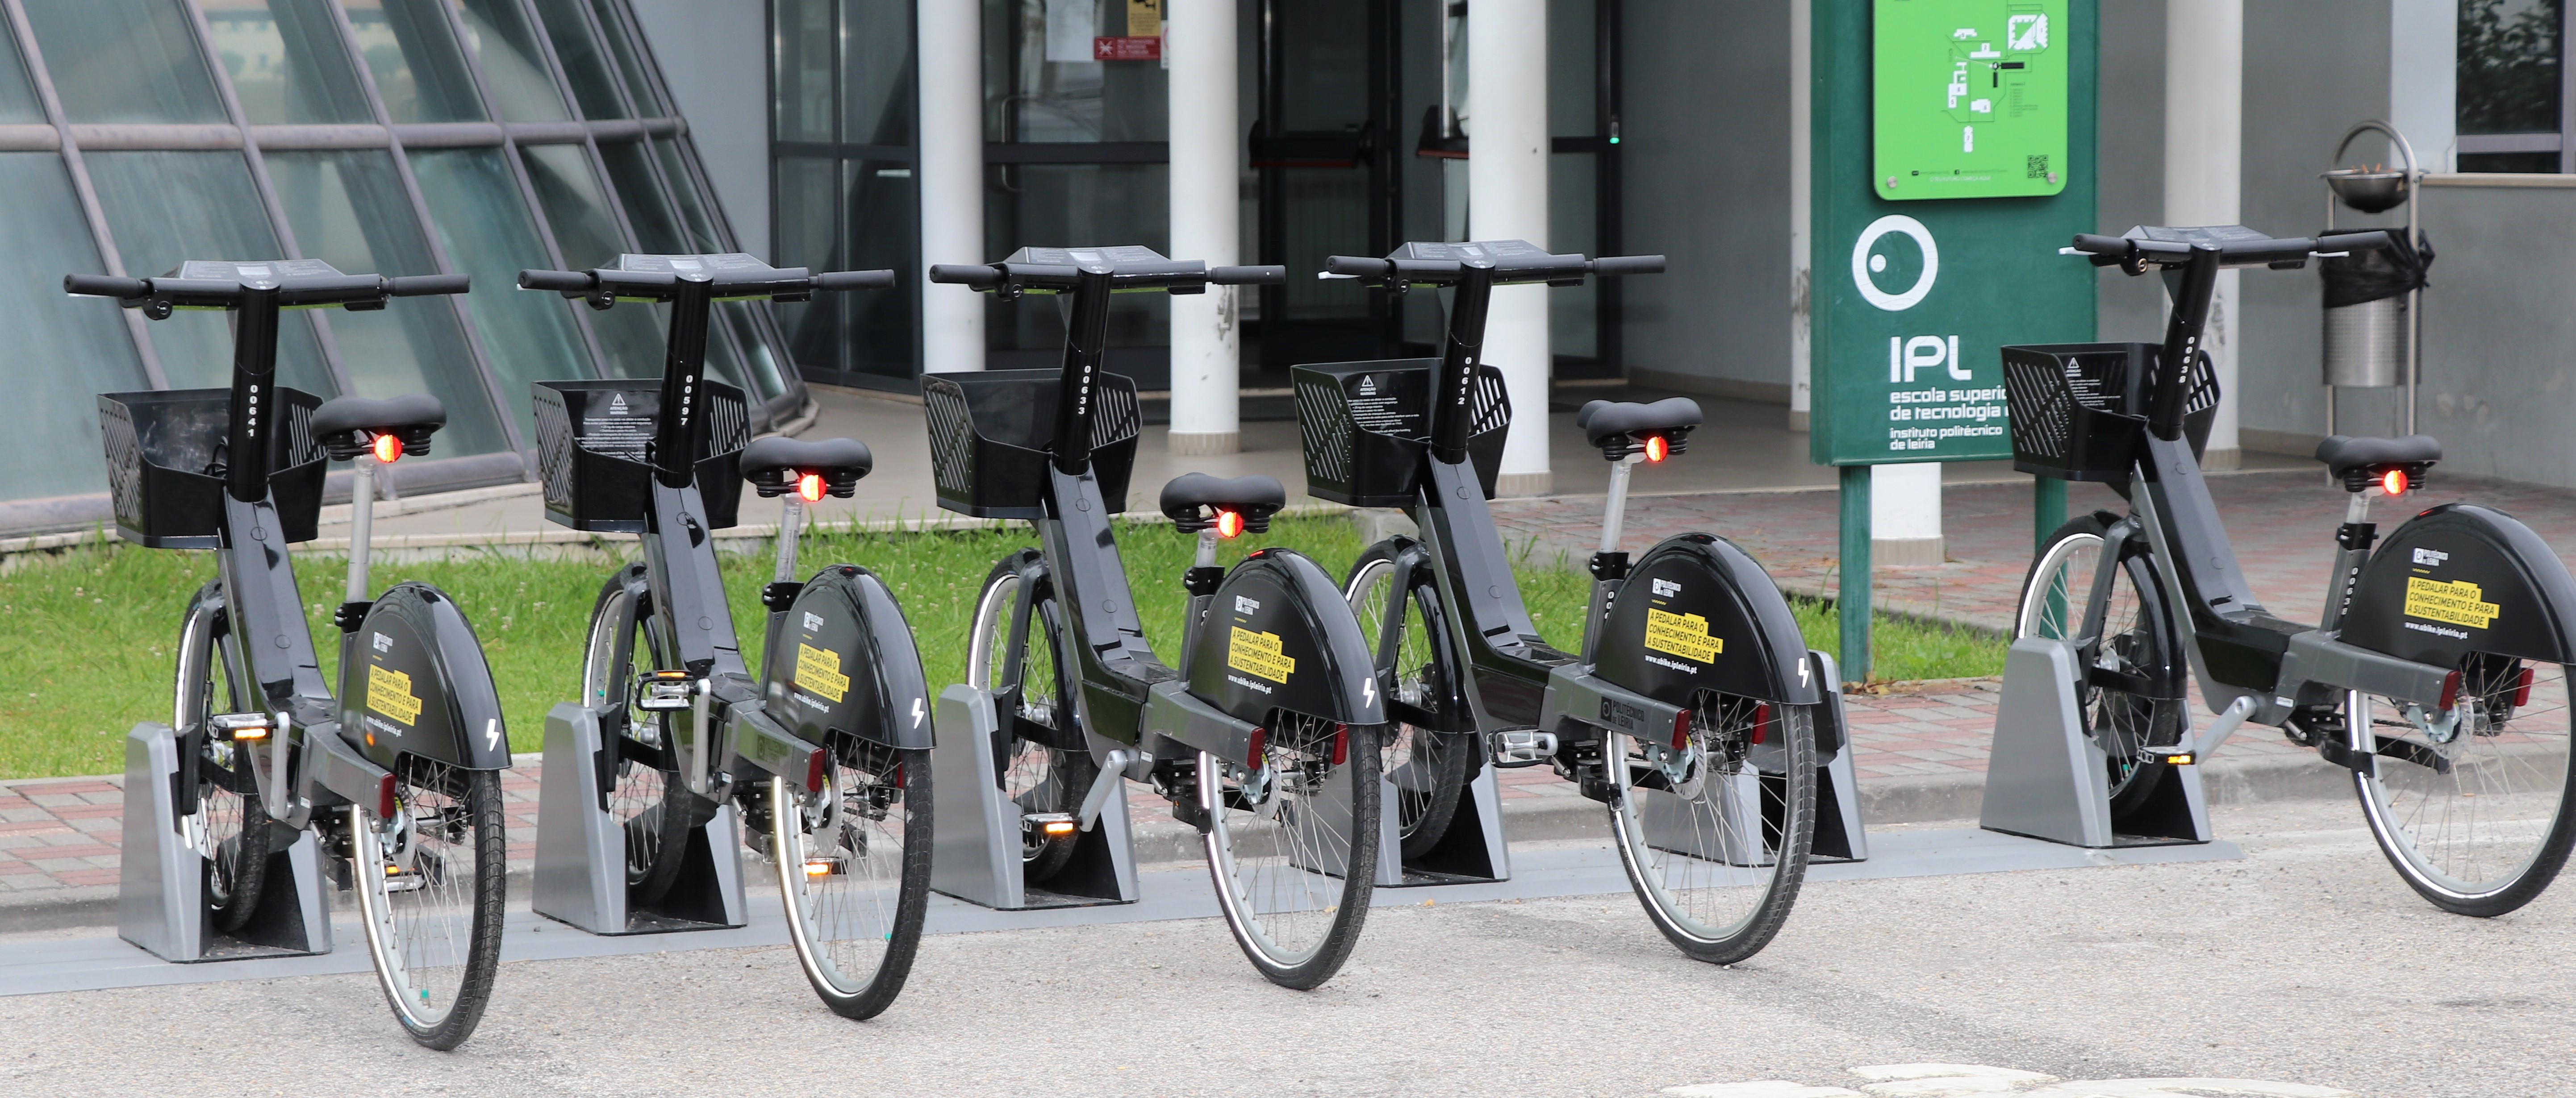 Wegoshare to Operate University Bike Share Program